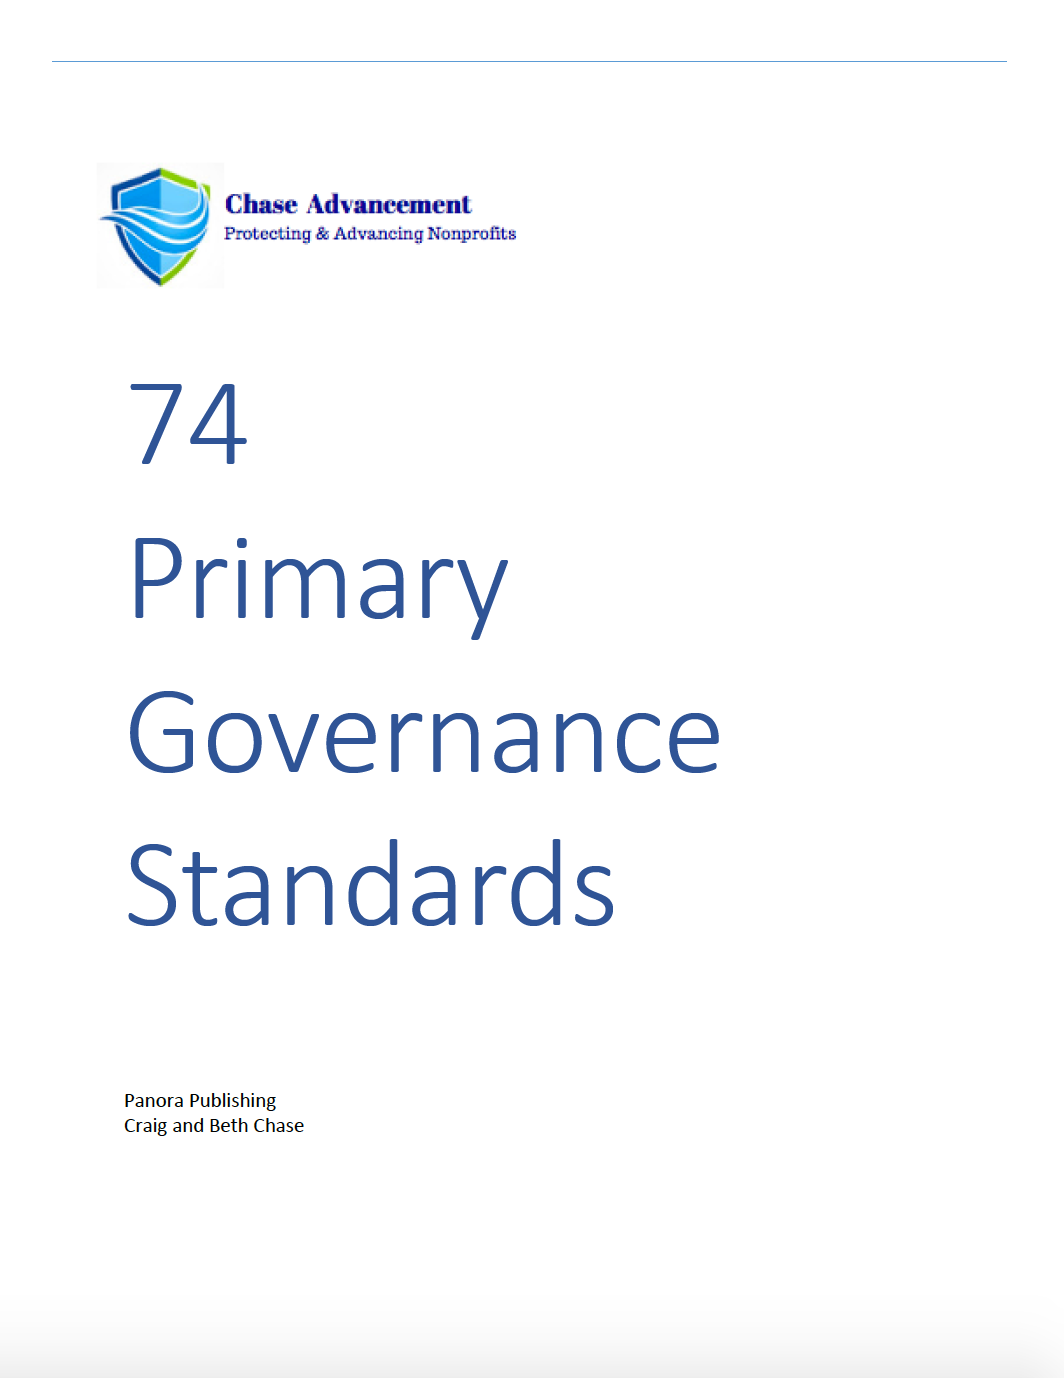 Products pmc network this brand new tool contains 74 primary board governance standards established by the irs guide star and better business bureau fandeluxe Gallery